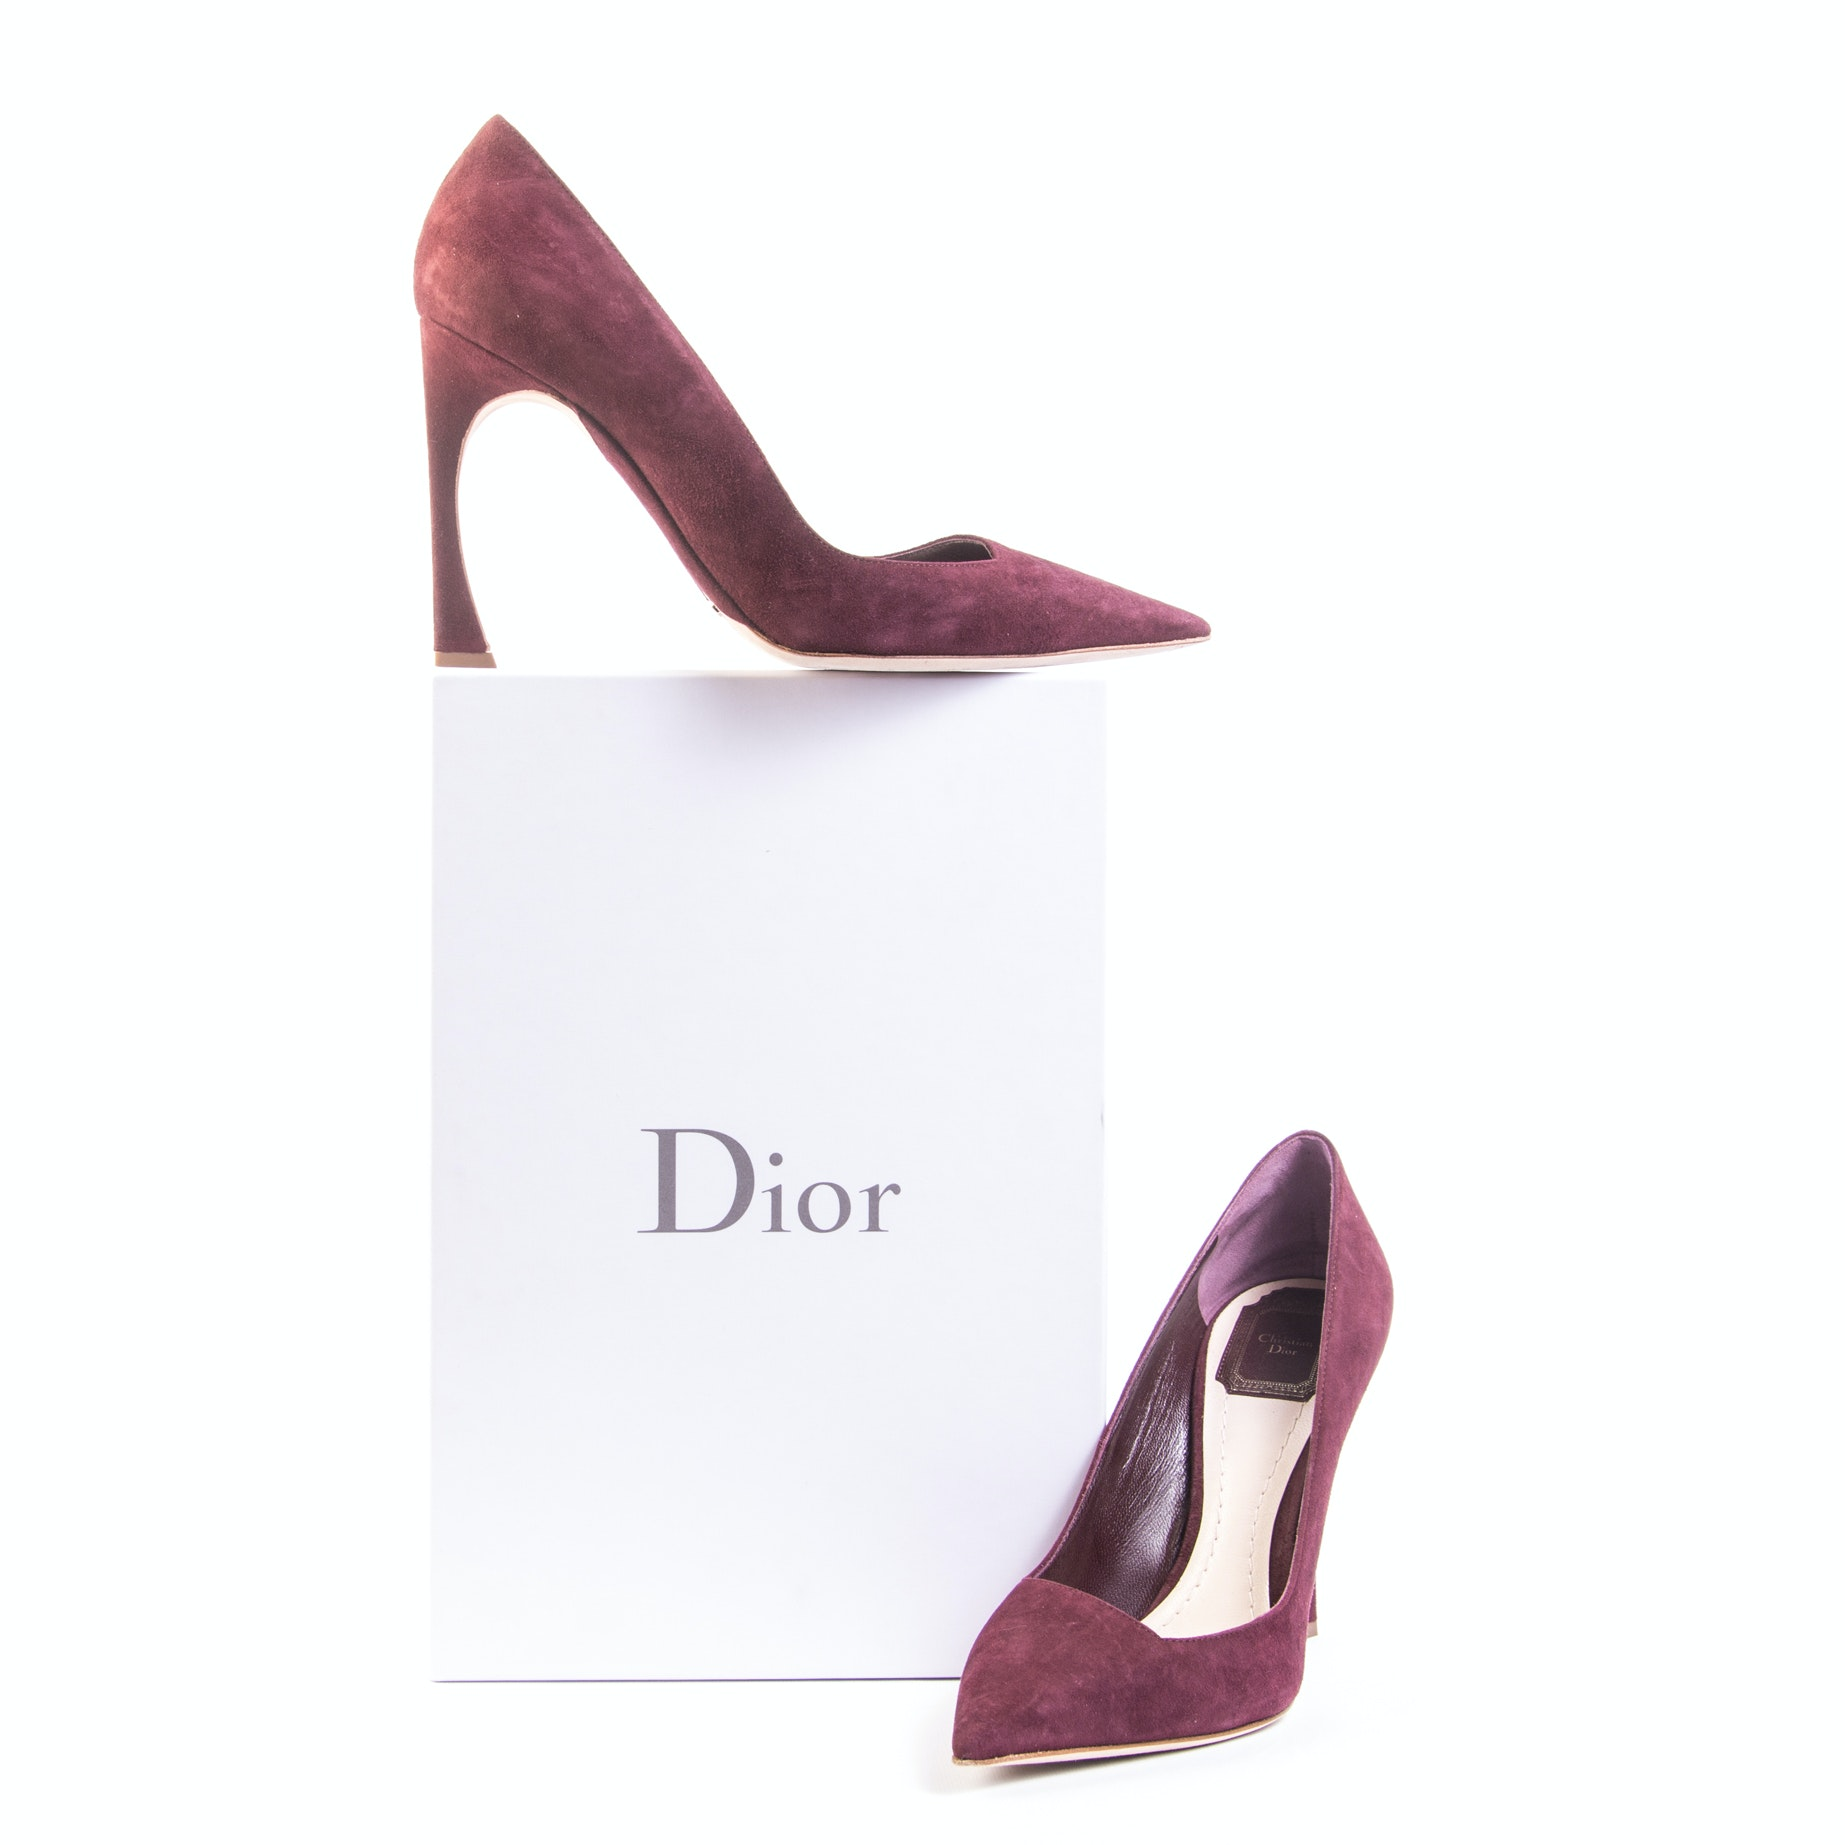 Christian Dior Songe Suede Pumps